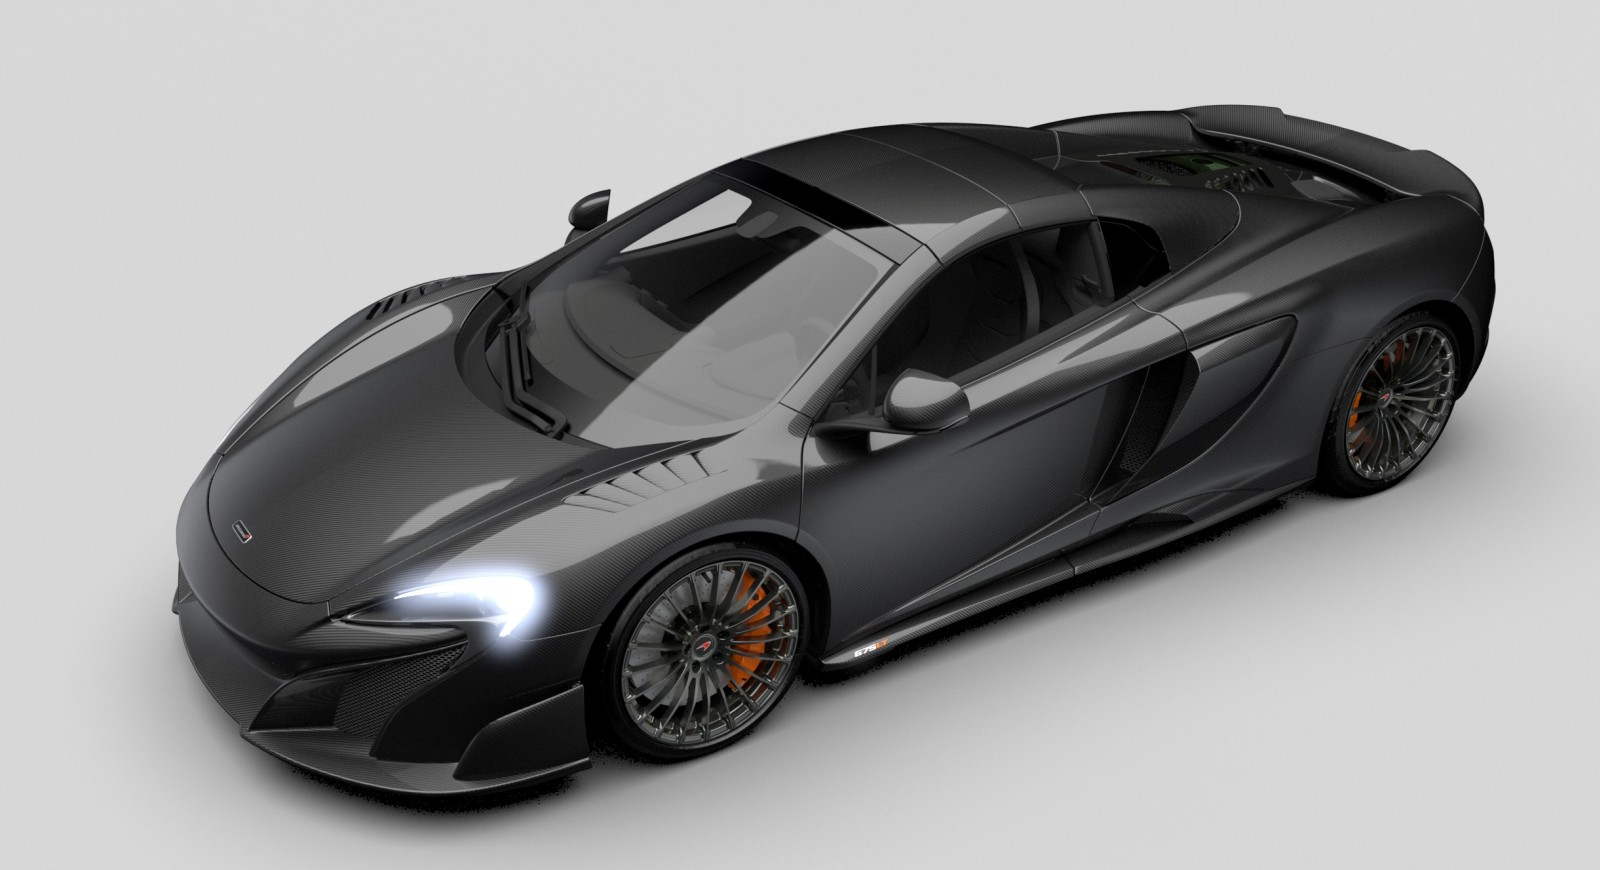 Limited edition McLaren MSO Carbon Series LT (1)